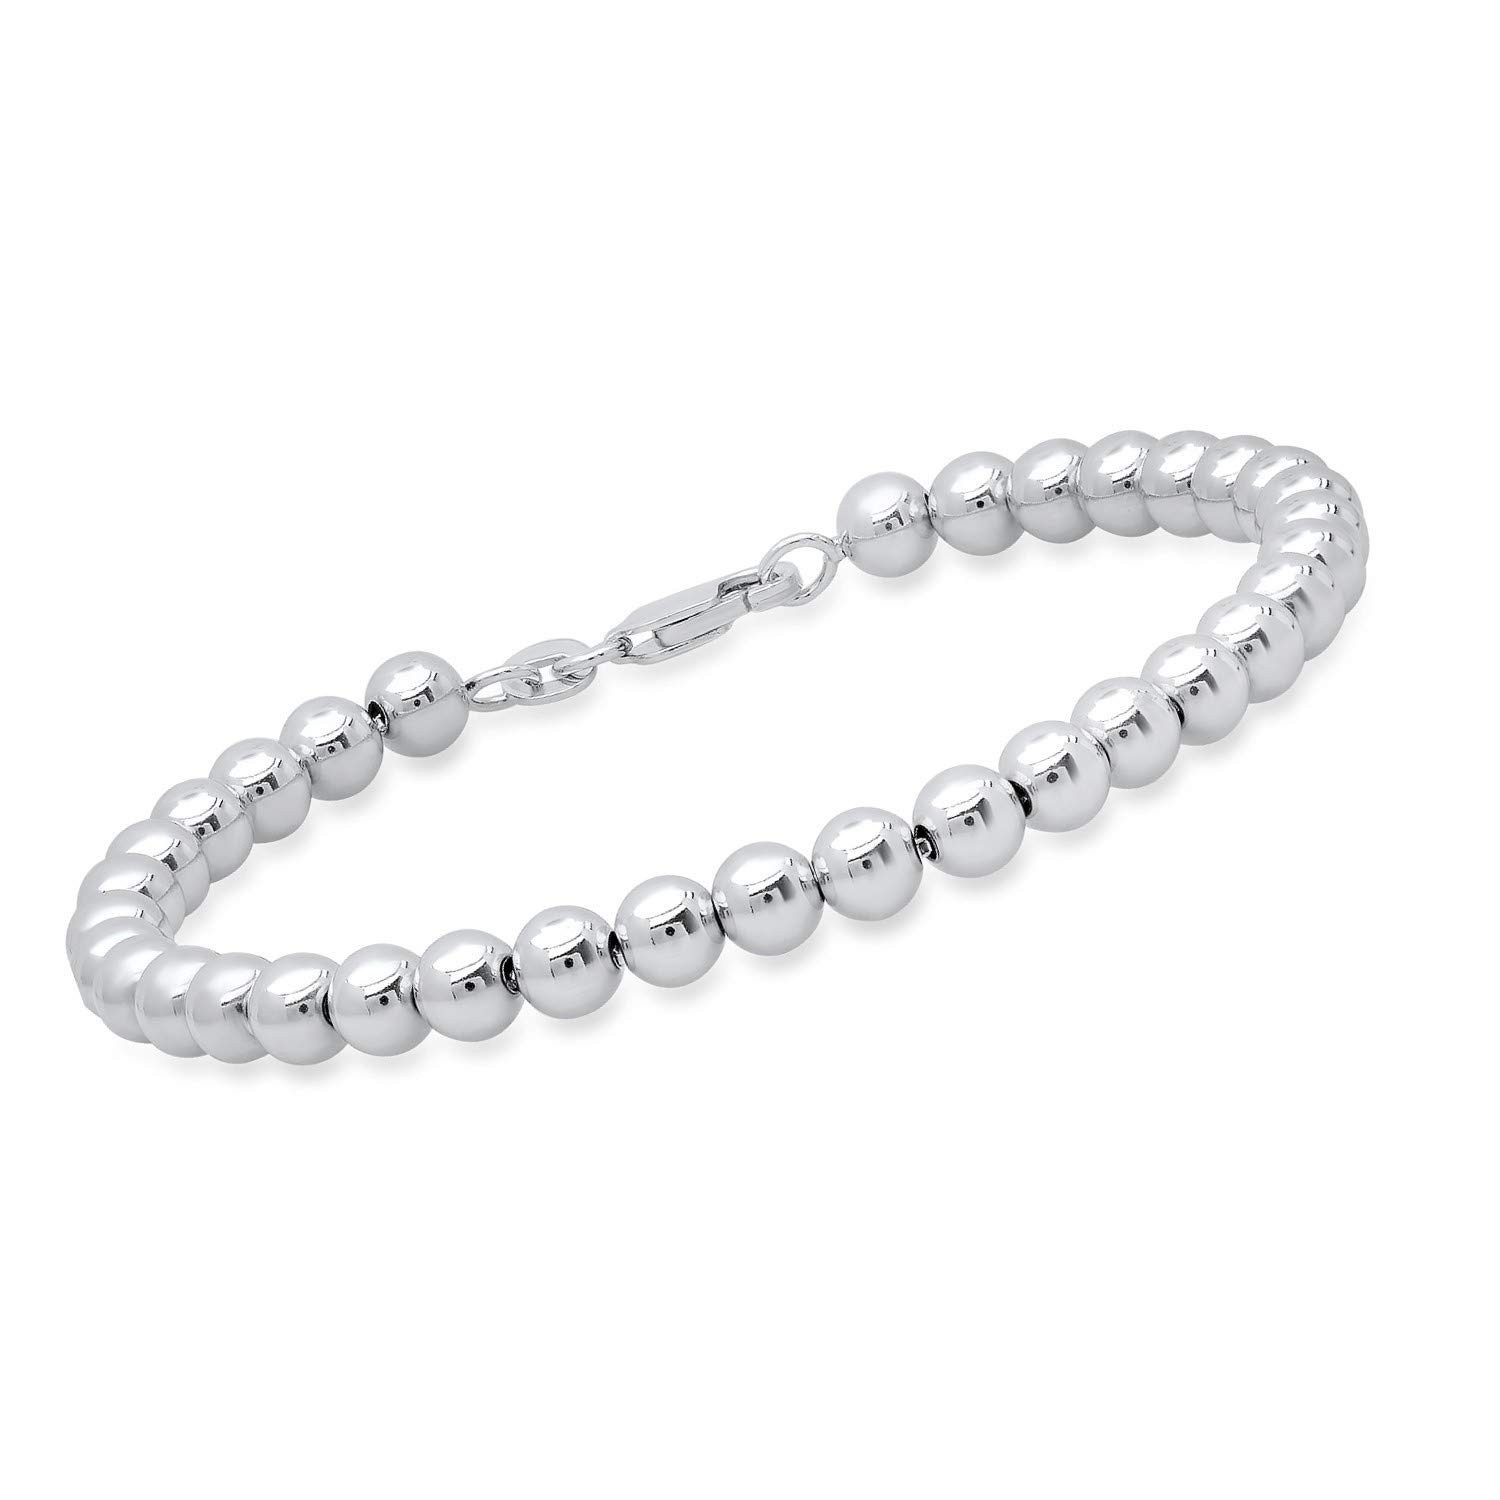 Sterling Silver Ball Chain Bracelet with Lobster Claw, 7 inches by Parade of Jewels